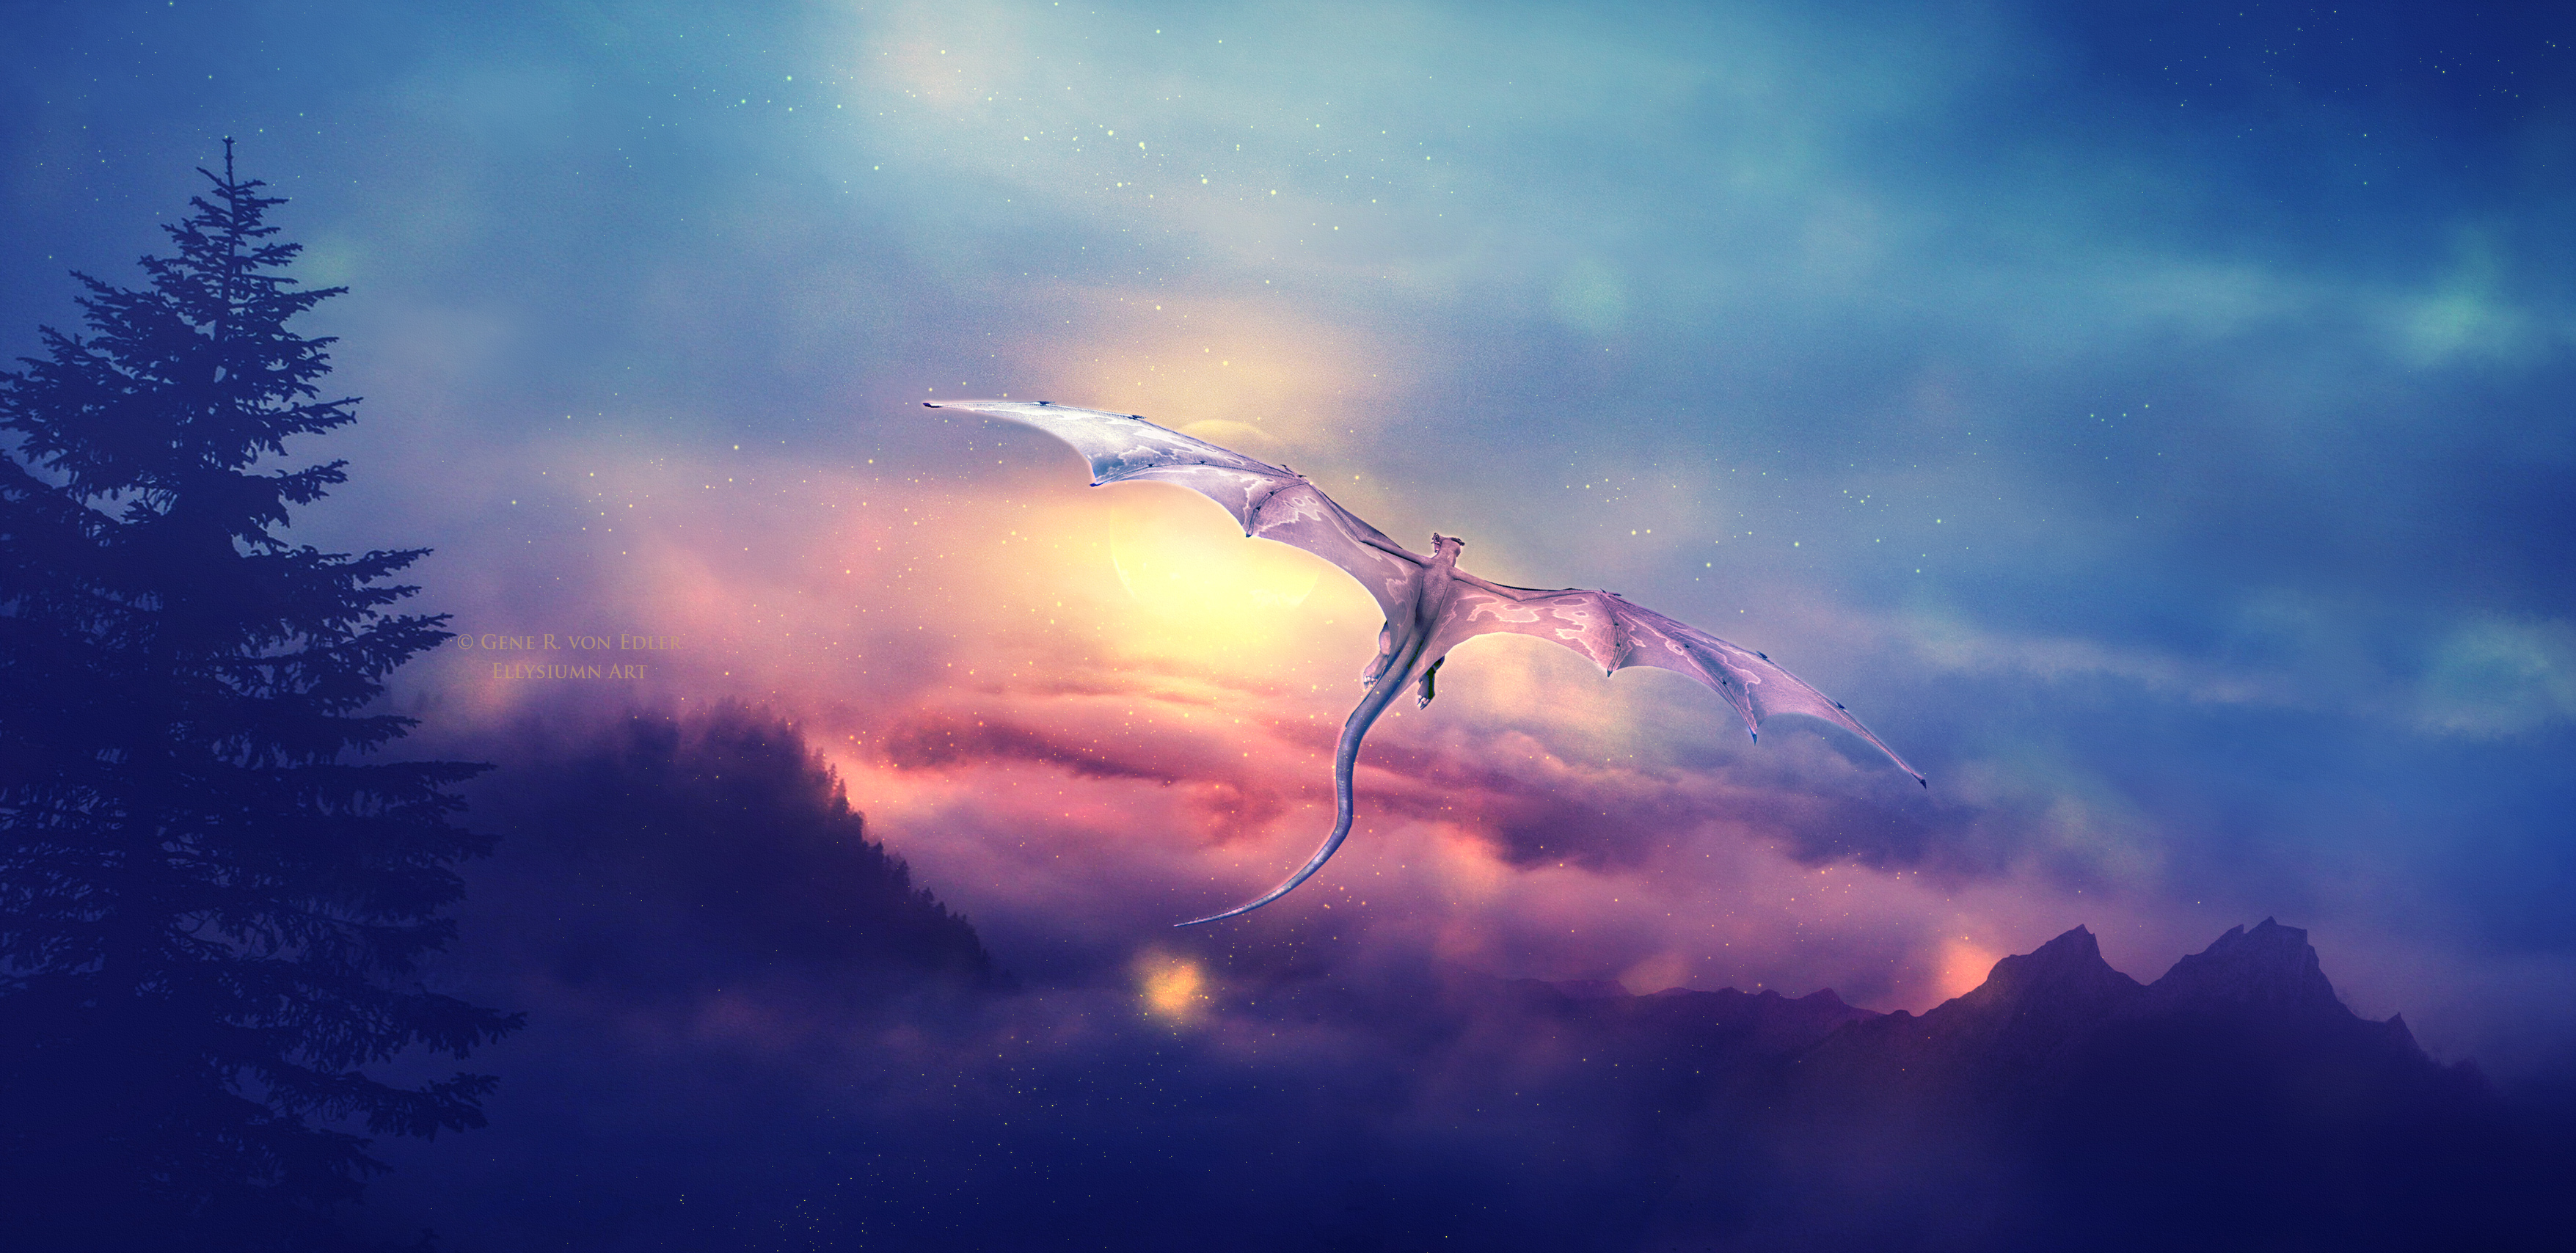 Dragon Flying Over Hd Artist 4k Wallpapers Images